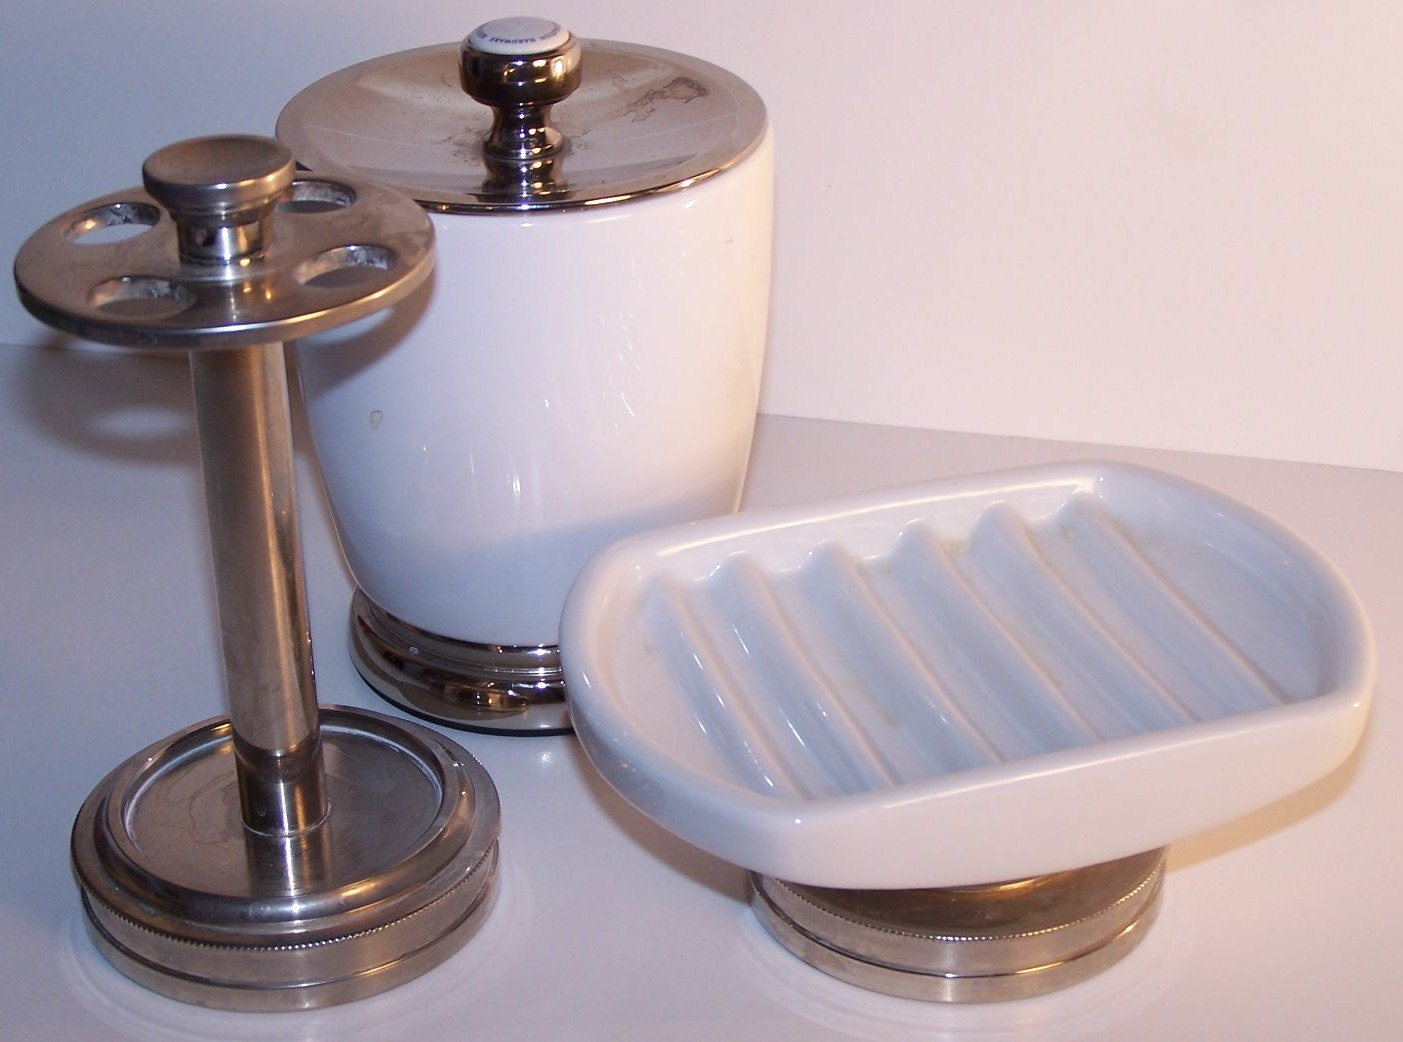 Vintage White Porcelain & Brushed Nickel Craftsman Style